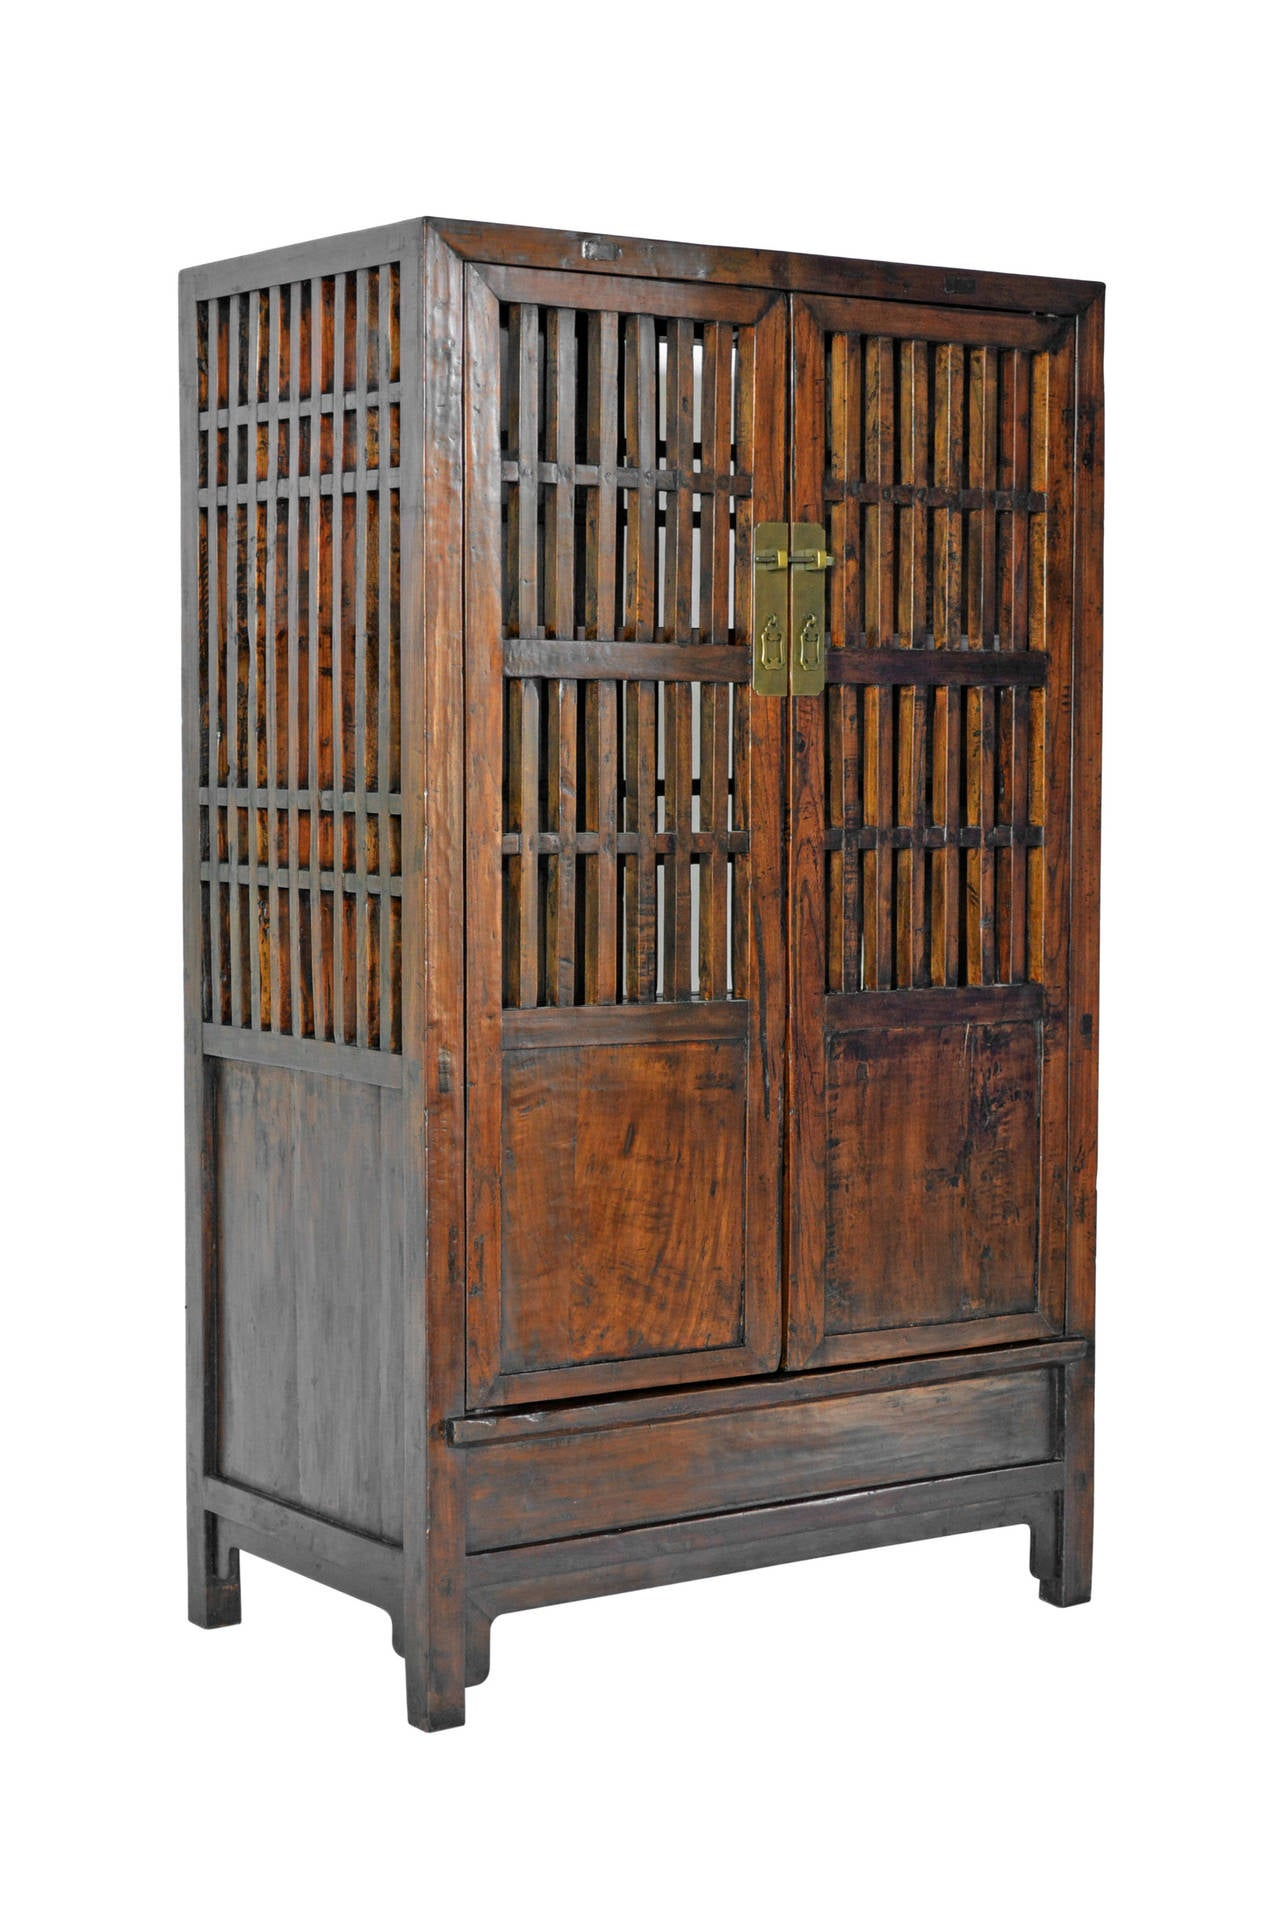 19th century chinese kitchen cabinet for sale at 1stdibs for Chinese kitchen cabinets